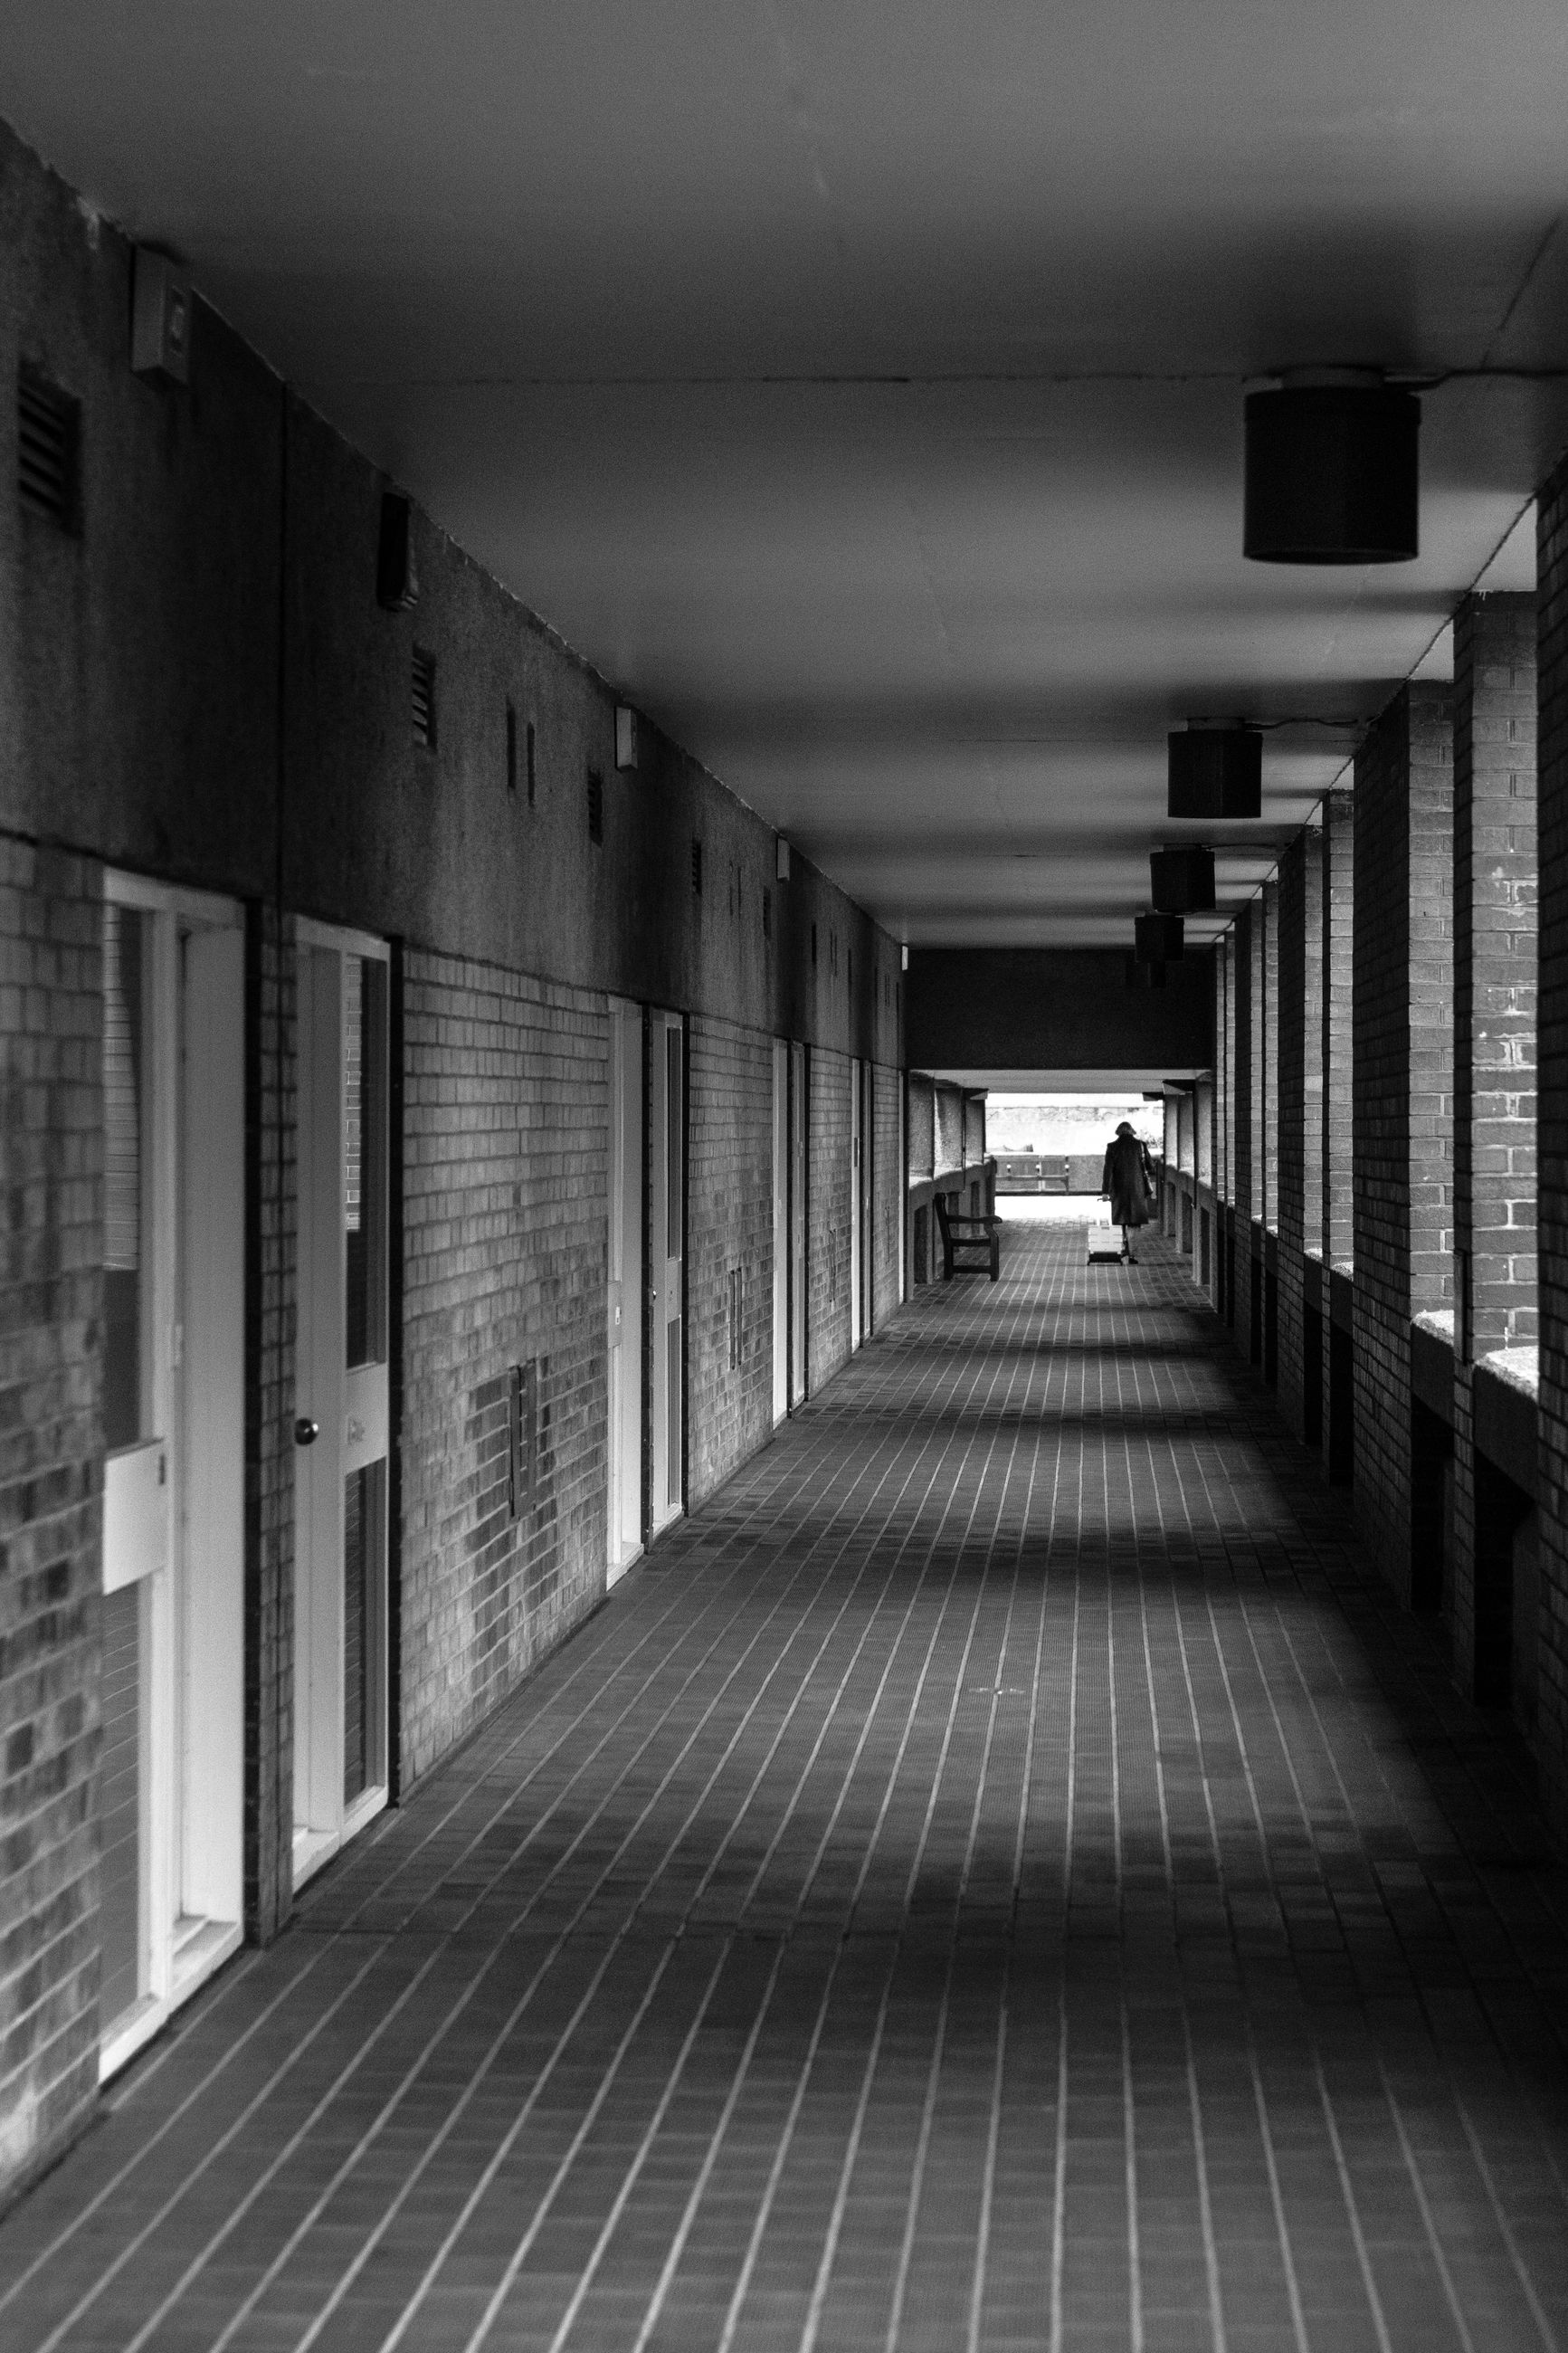 architecture, built structure, the way forward, direction, arcade, corridor, building, ceiling, indoors, illuminated, incidental people, flooring, diminishing perspective, architectural column, lighting equipment, empty, tile, footpath, day, subway, tiled floor, underpass, colonnade, long, underground walkway